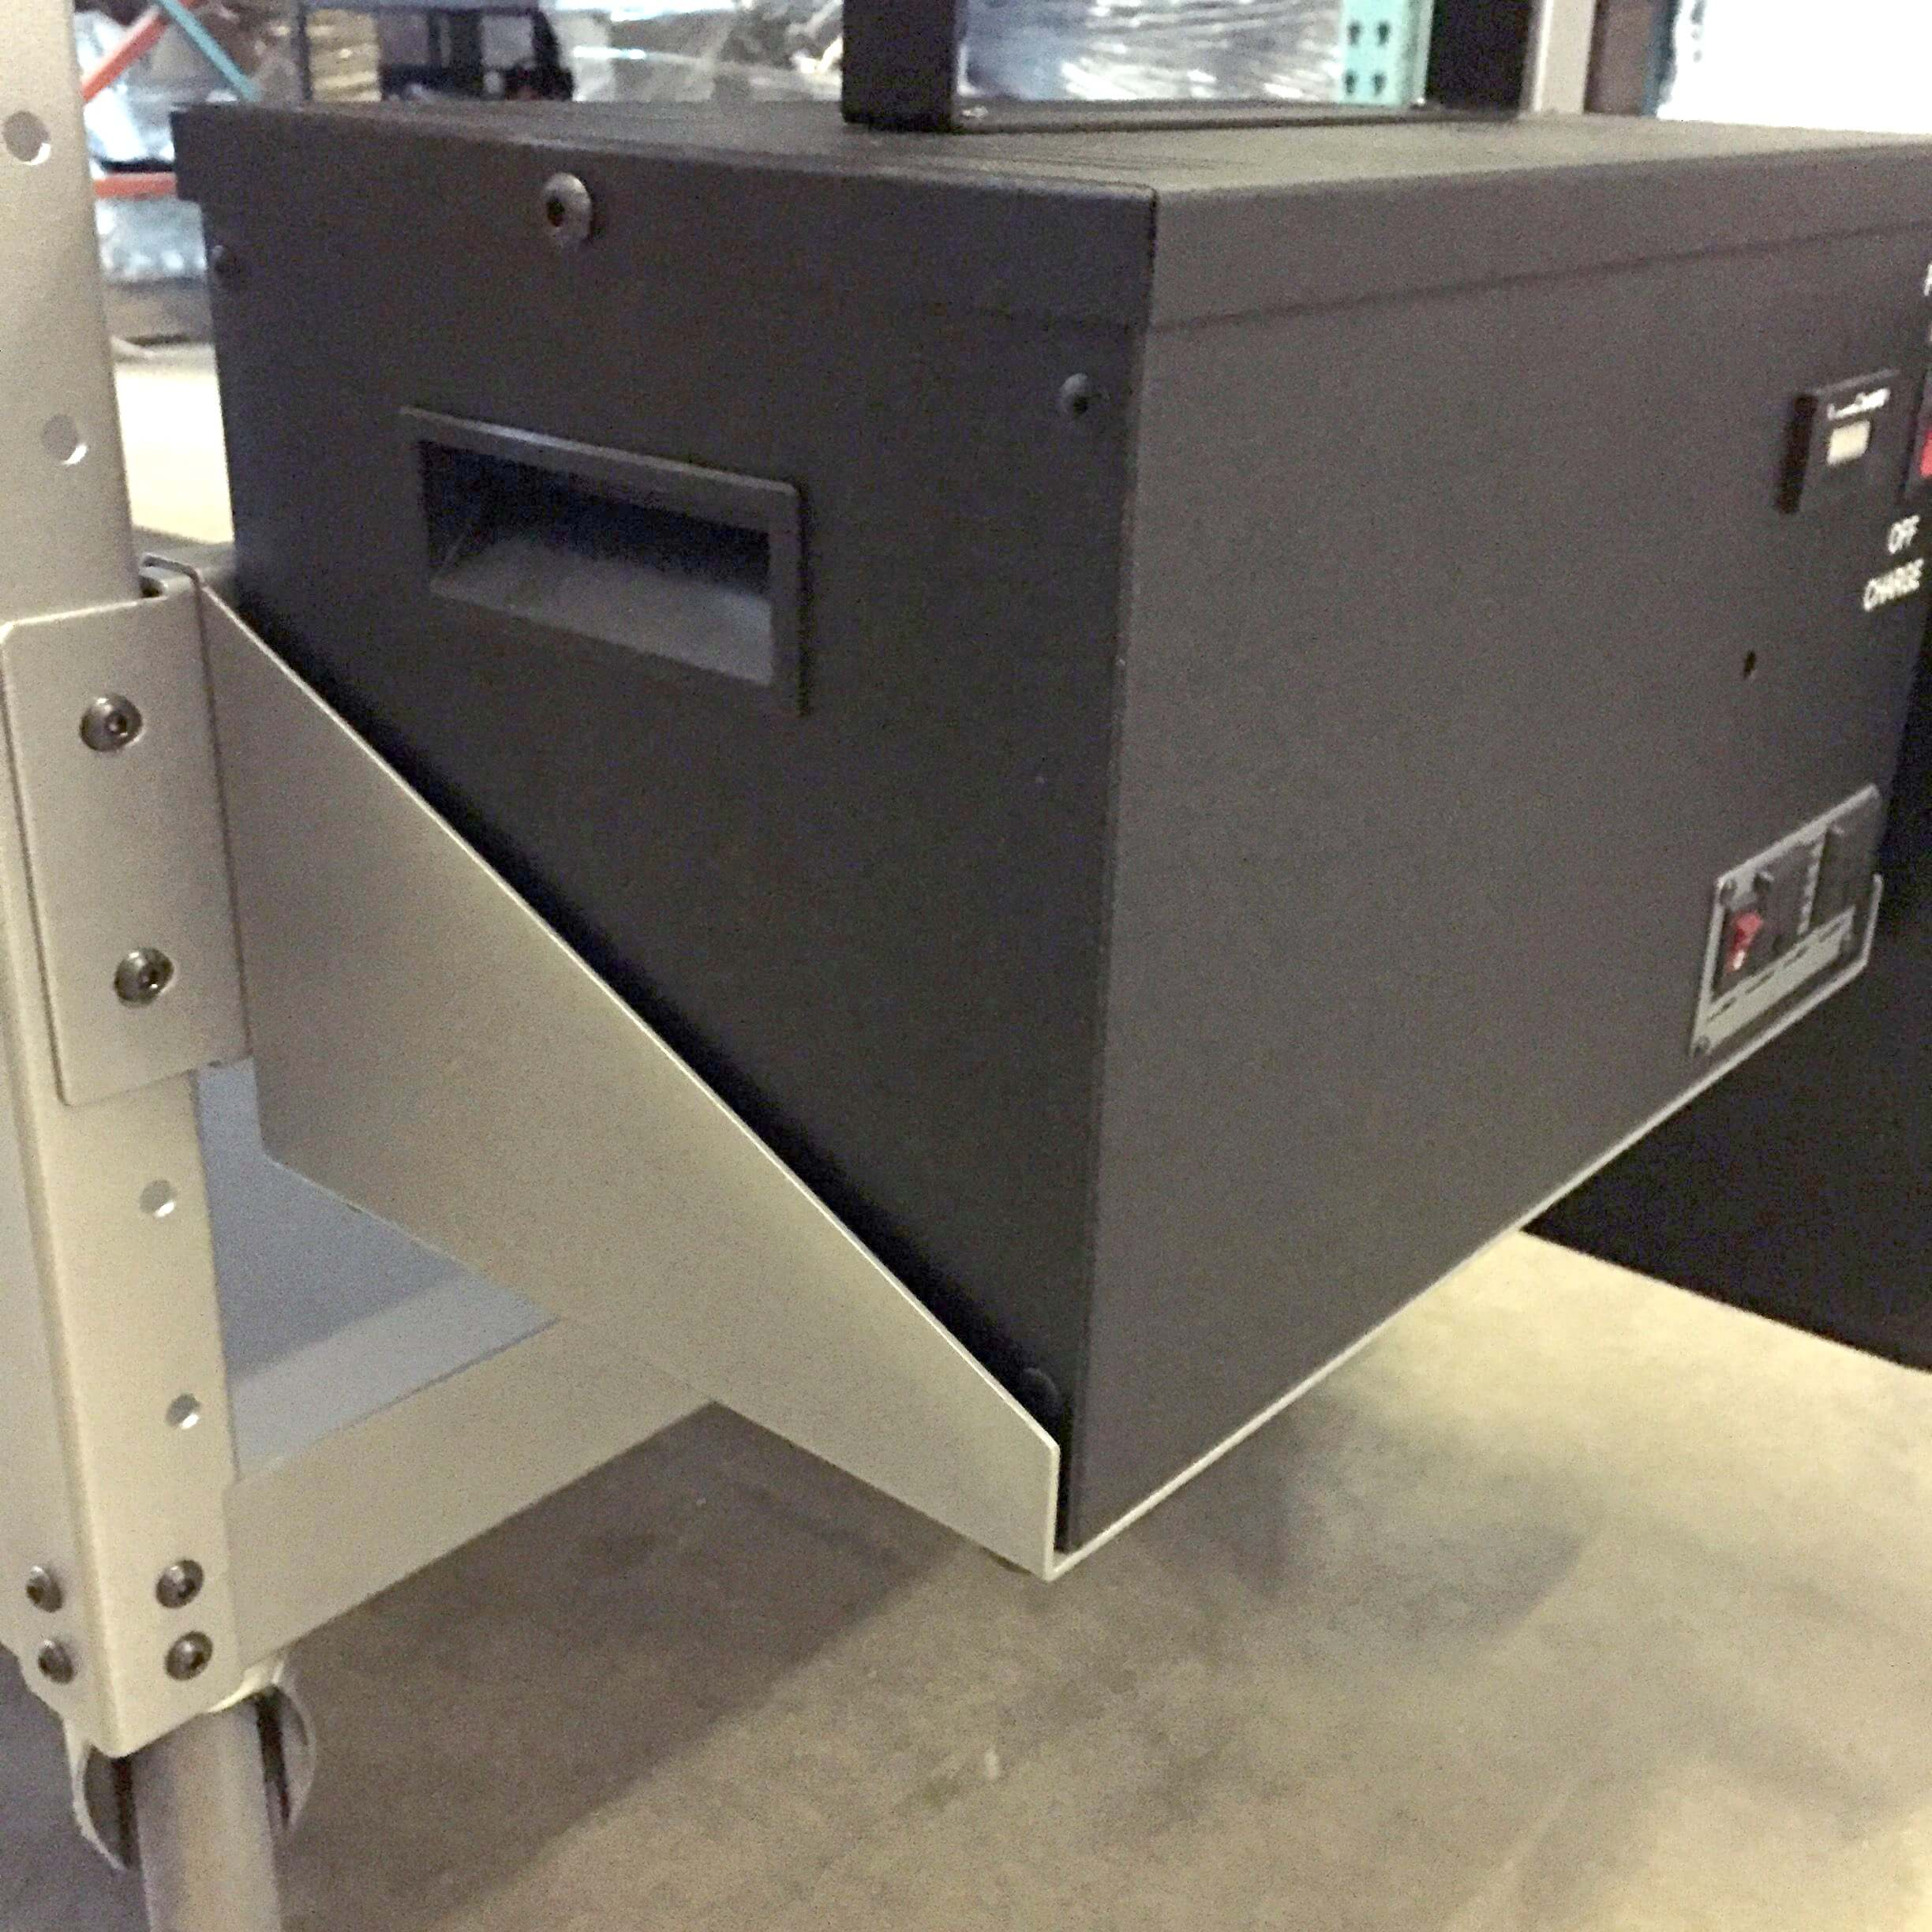 B304 Battery Box Plate for PowerPick Series Mobile Picking Carts by Newcastle Systems